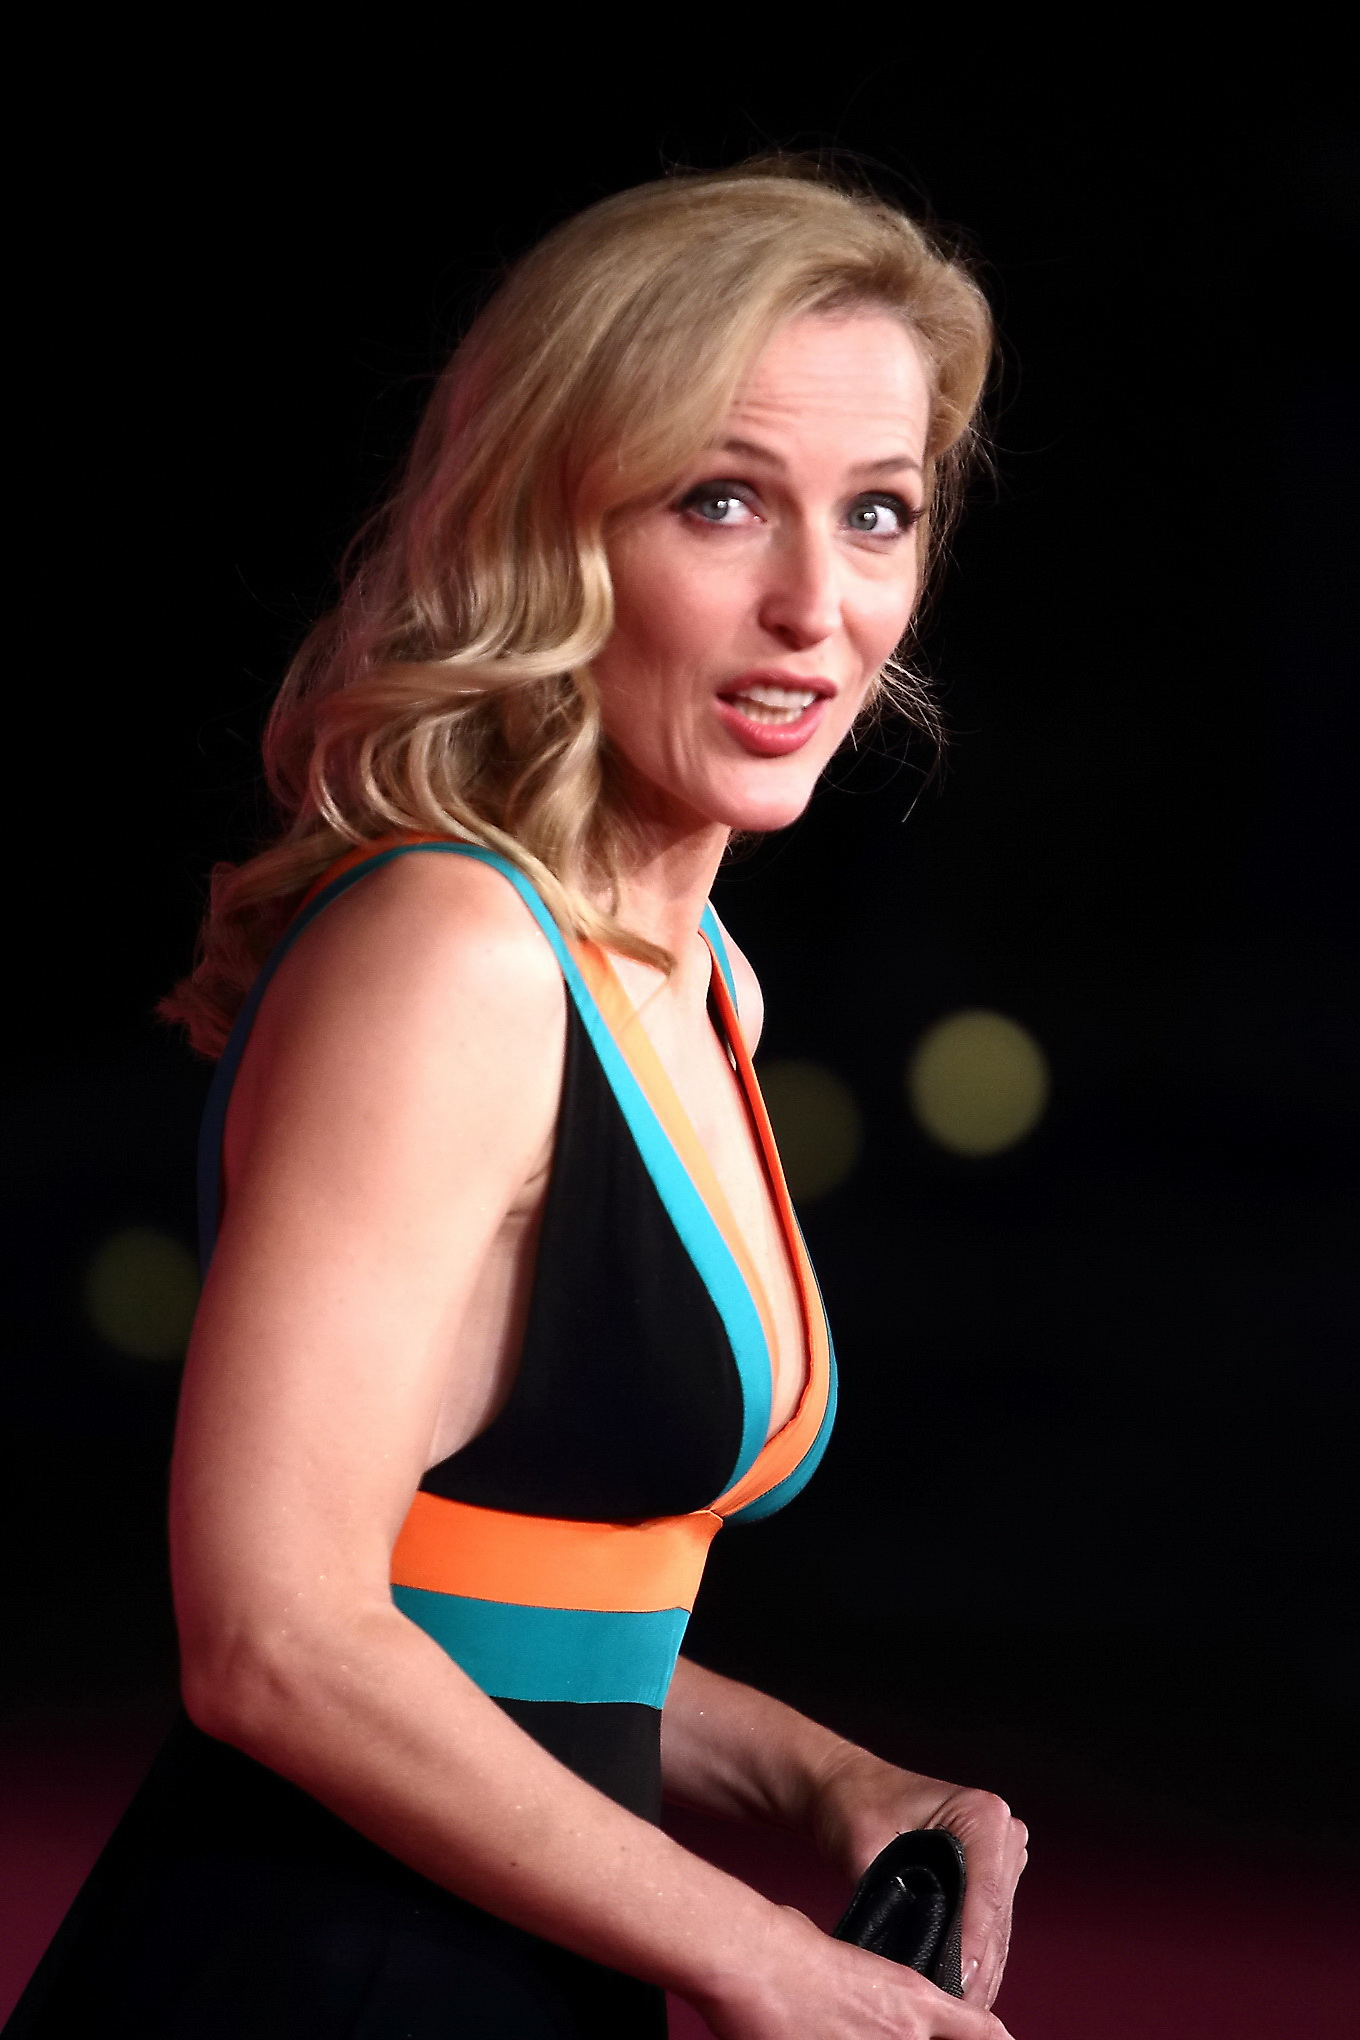 51 Hot Pictures Of Gillian Anderson Form X-Files Will Make ...